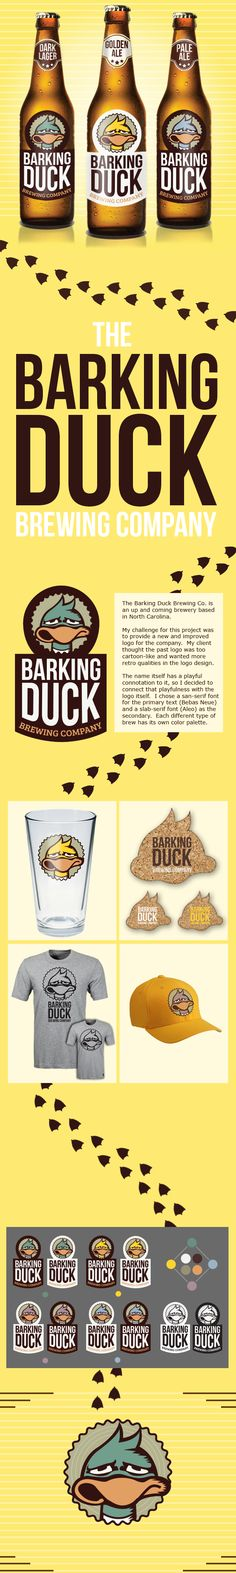 Barking Duck Brewing Co. by Joshua Hrdlick, via Behance